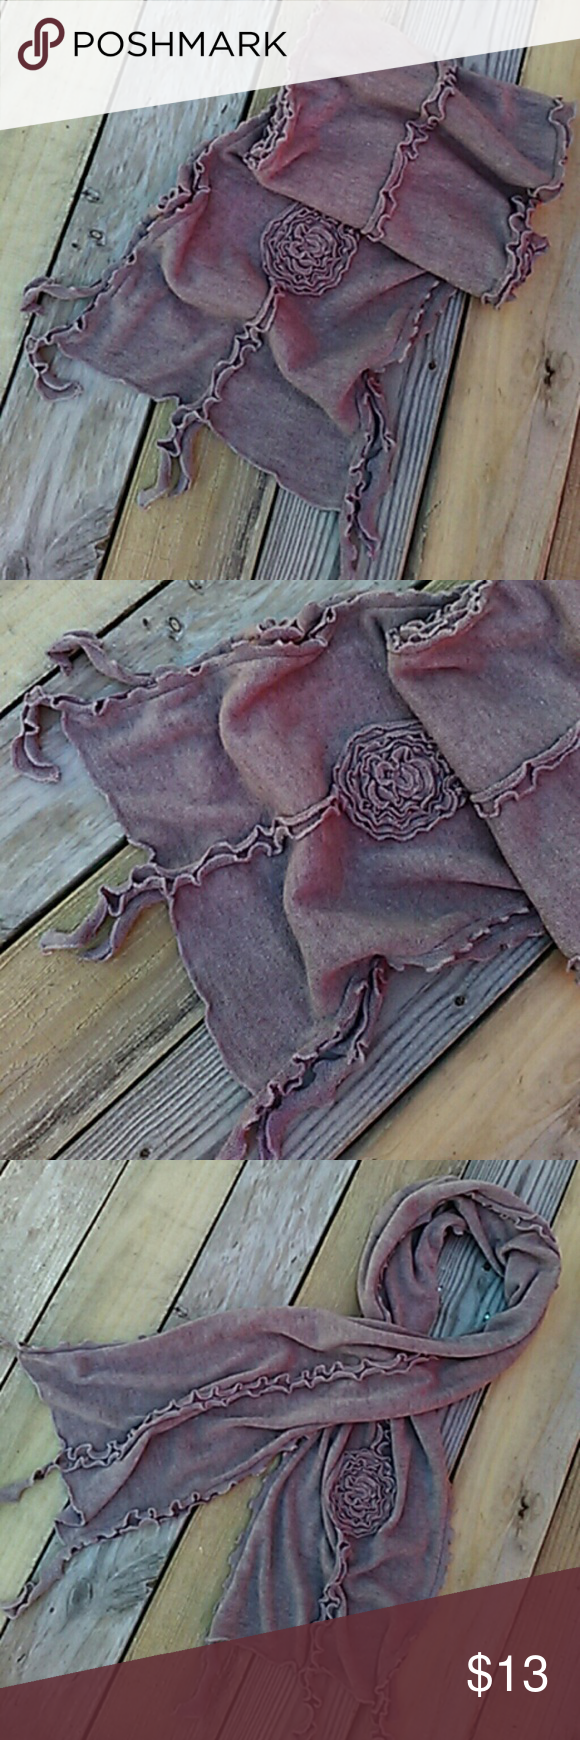 """Fringed Scarf EUC. Very cute scarf consist of wool and acrylic. Fringed on the end. Has a flower on one side. Approx 76"""" long and 13"""" wide. Ruffled down the sides. Accessories Scarves & Wraps"""